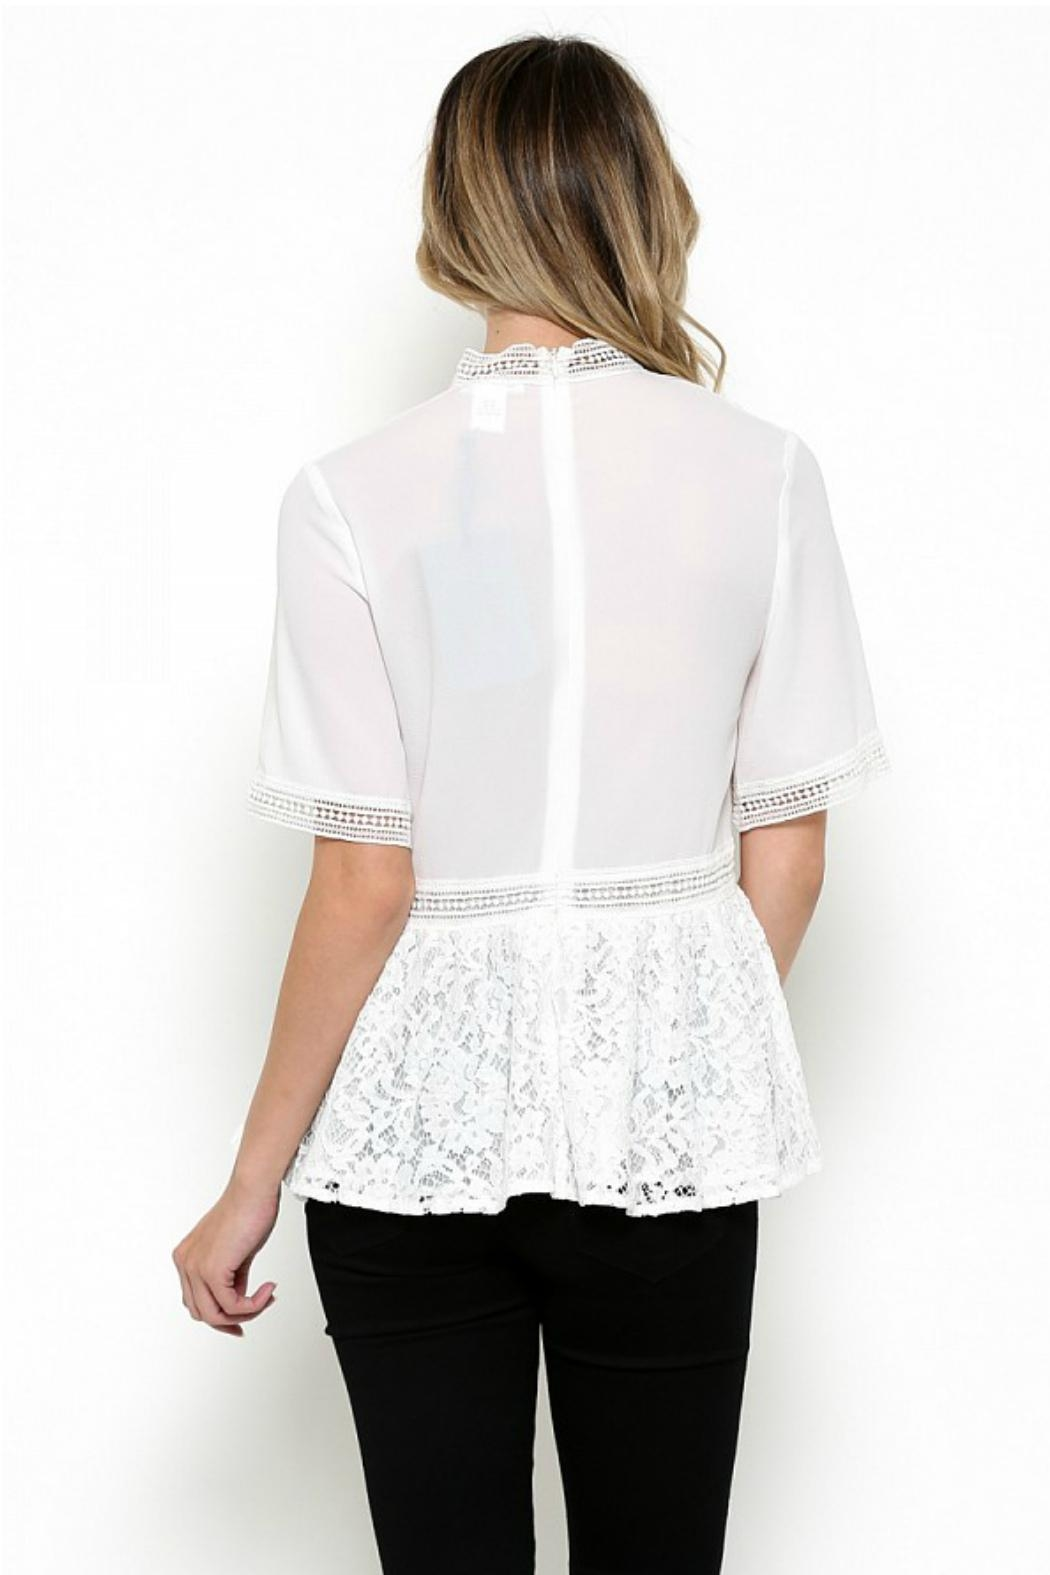 Elegance by Sarah Ruhs Chiffon Lace Blouse - Front Full Image